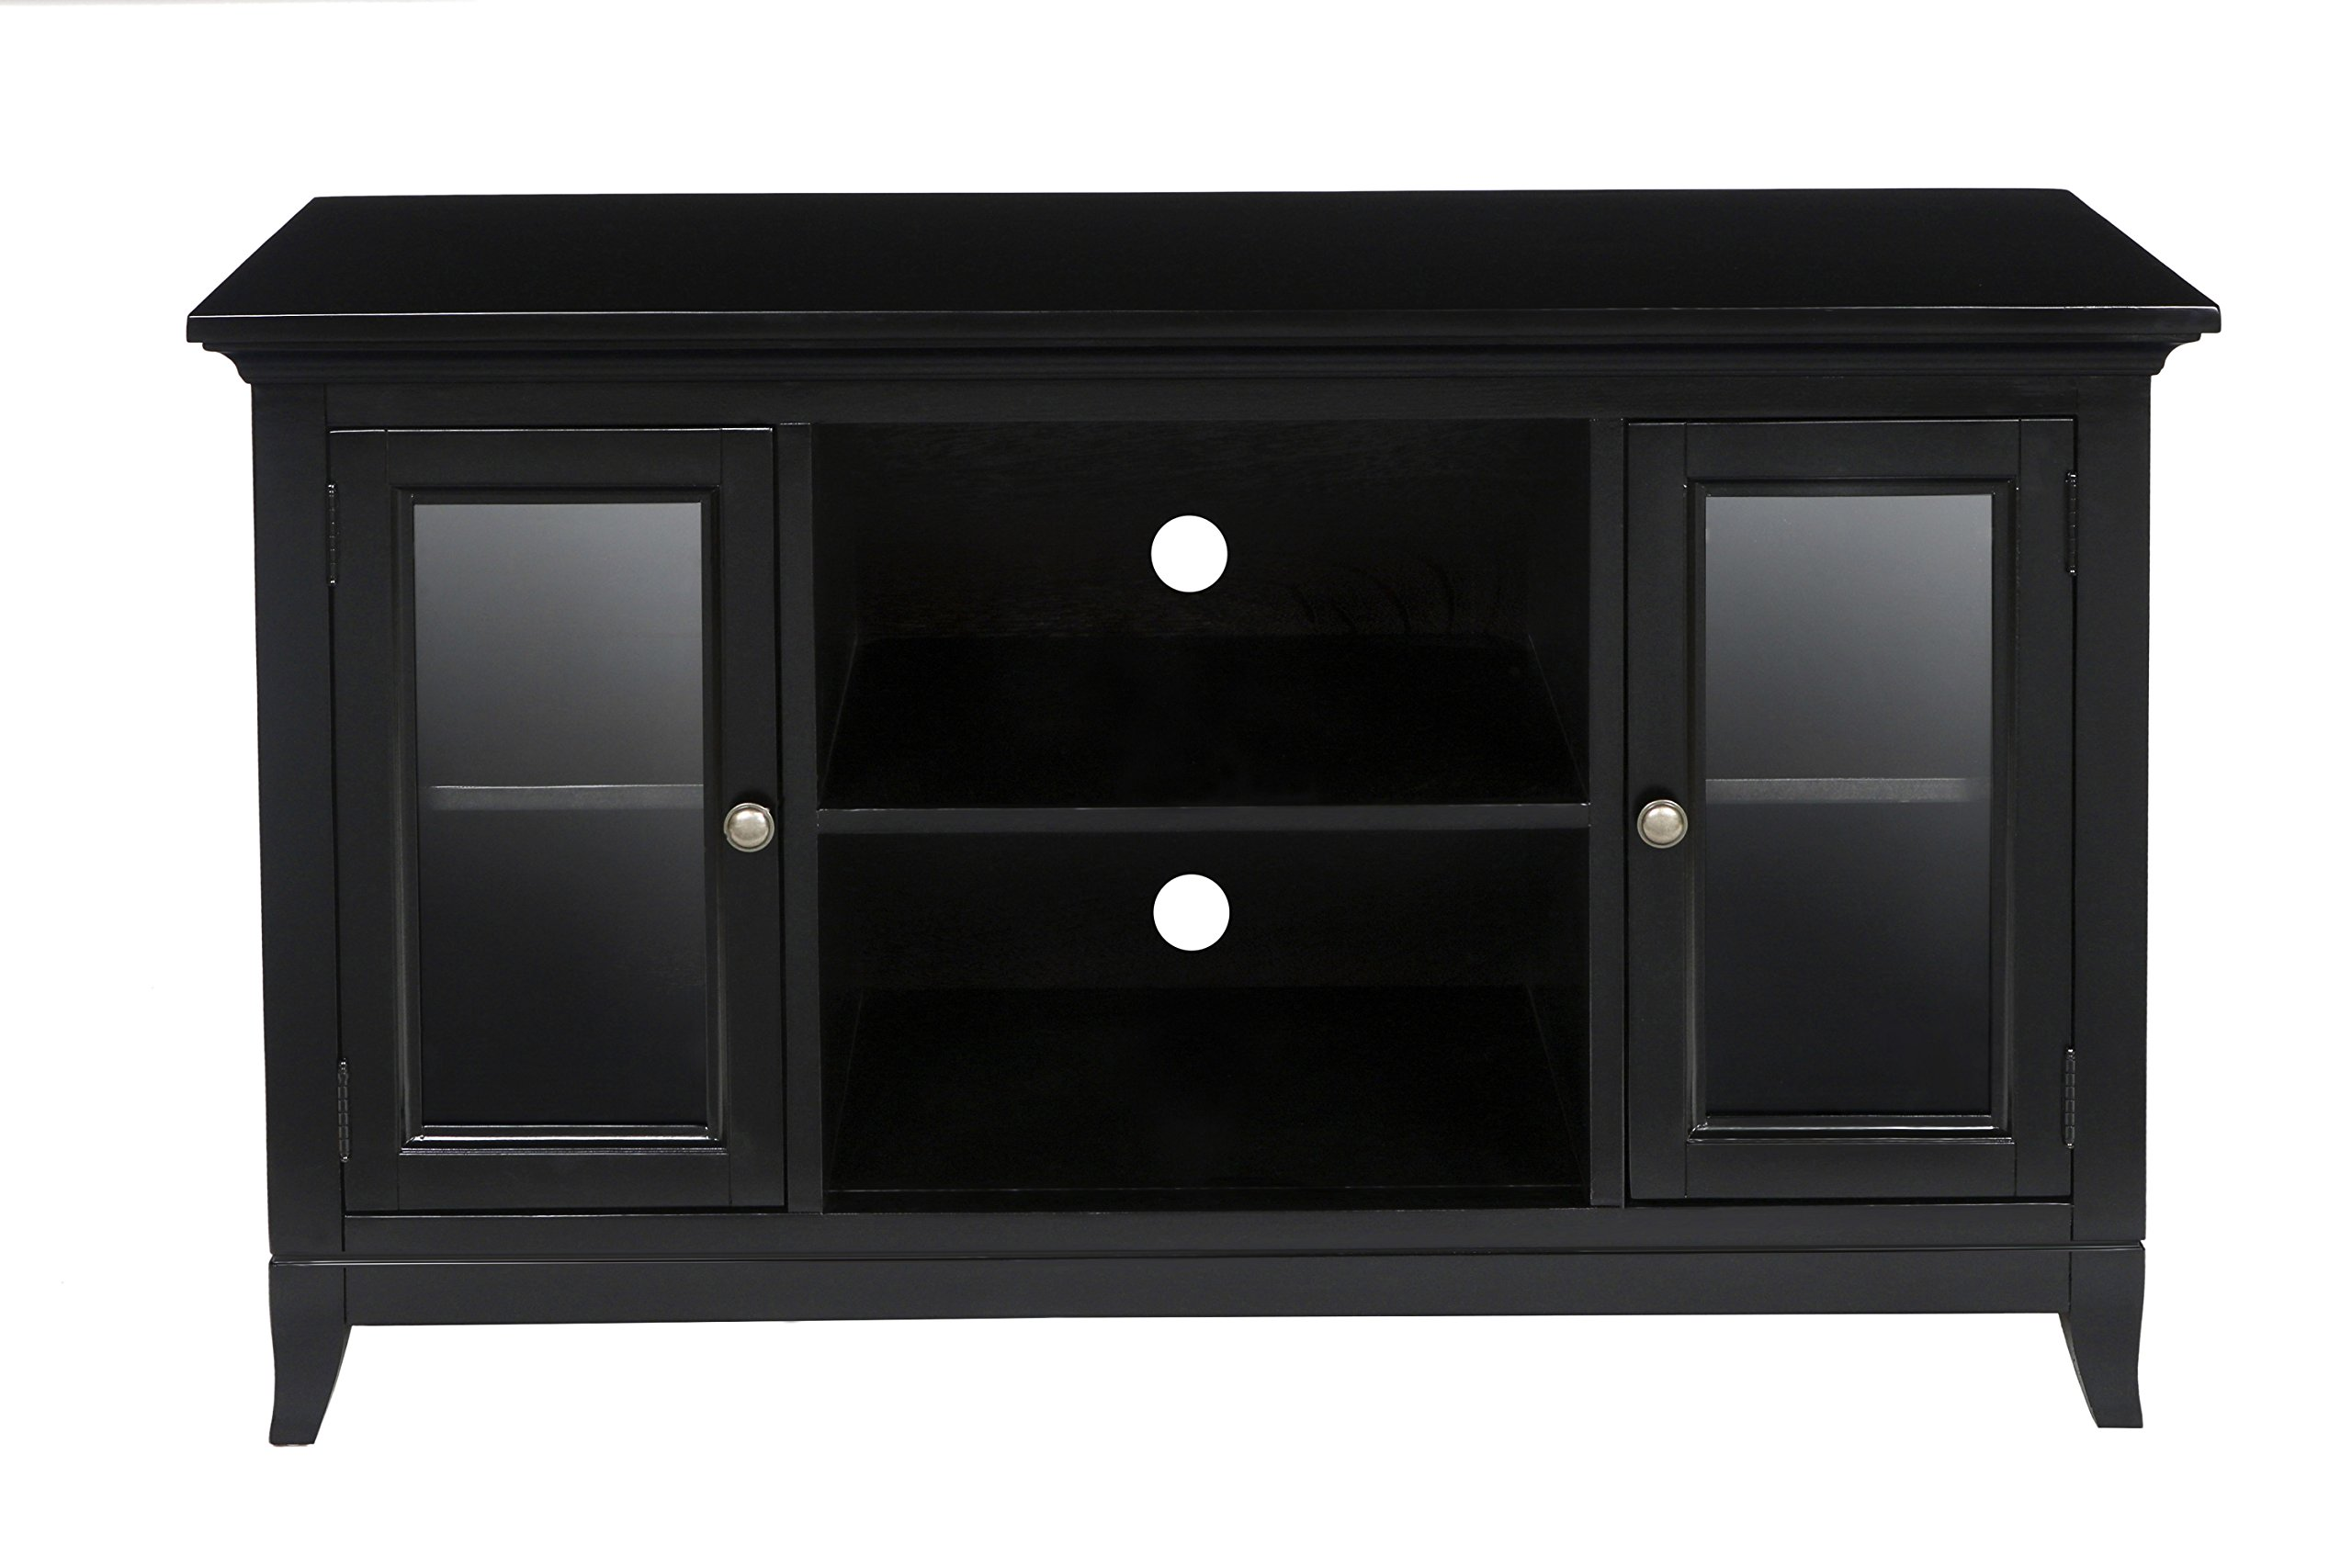 New Classic Franklin Park Simple Entertainment Espresso Console by New Classic Furniture